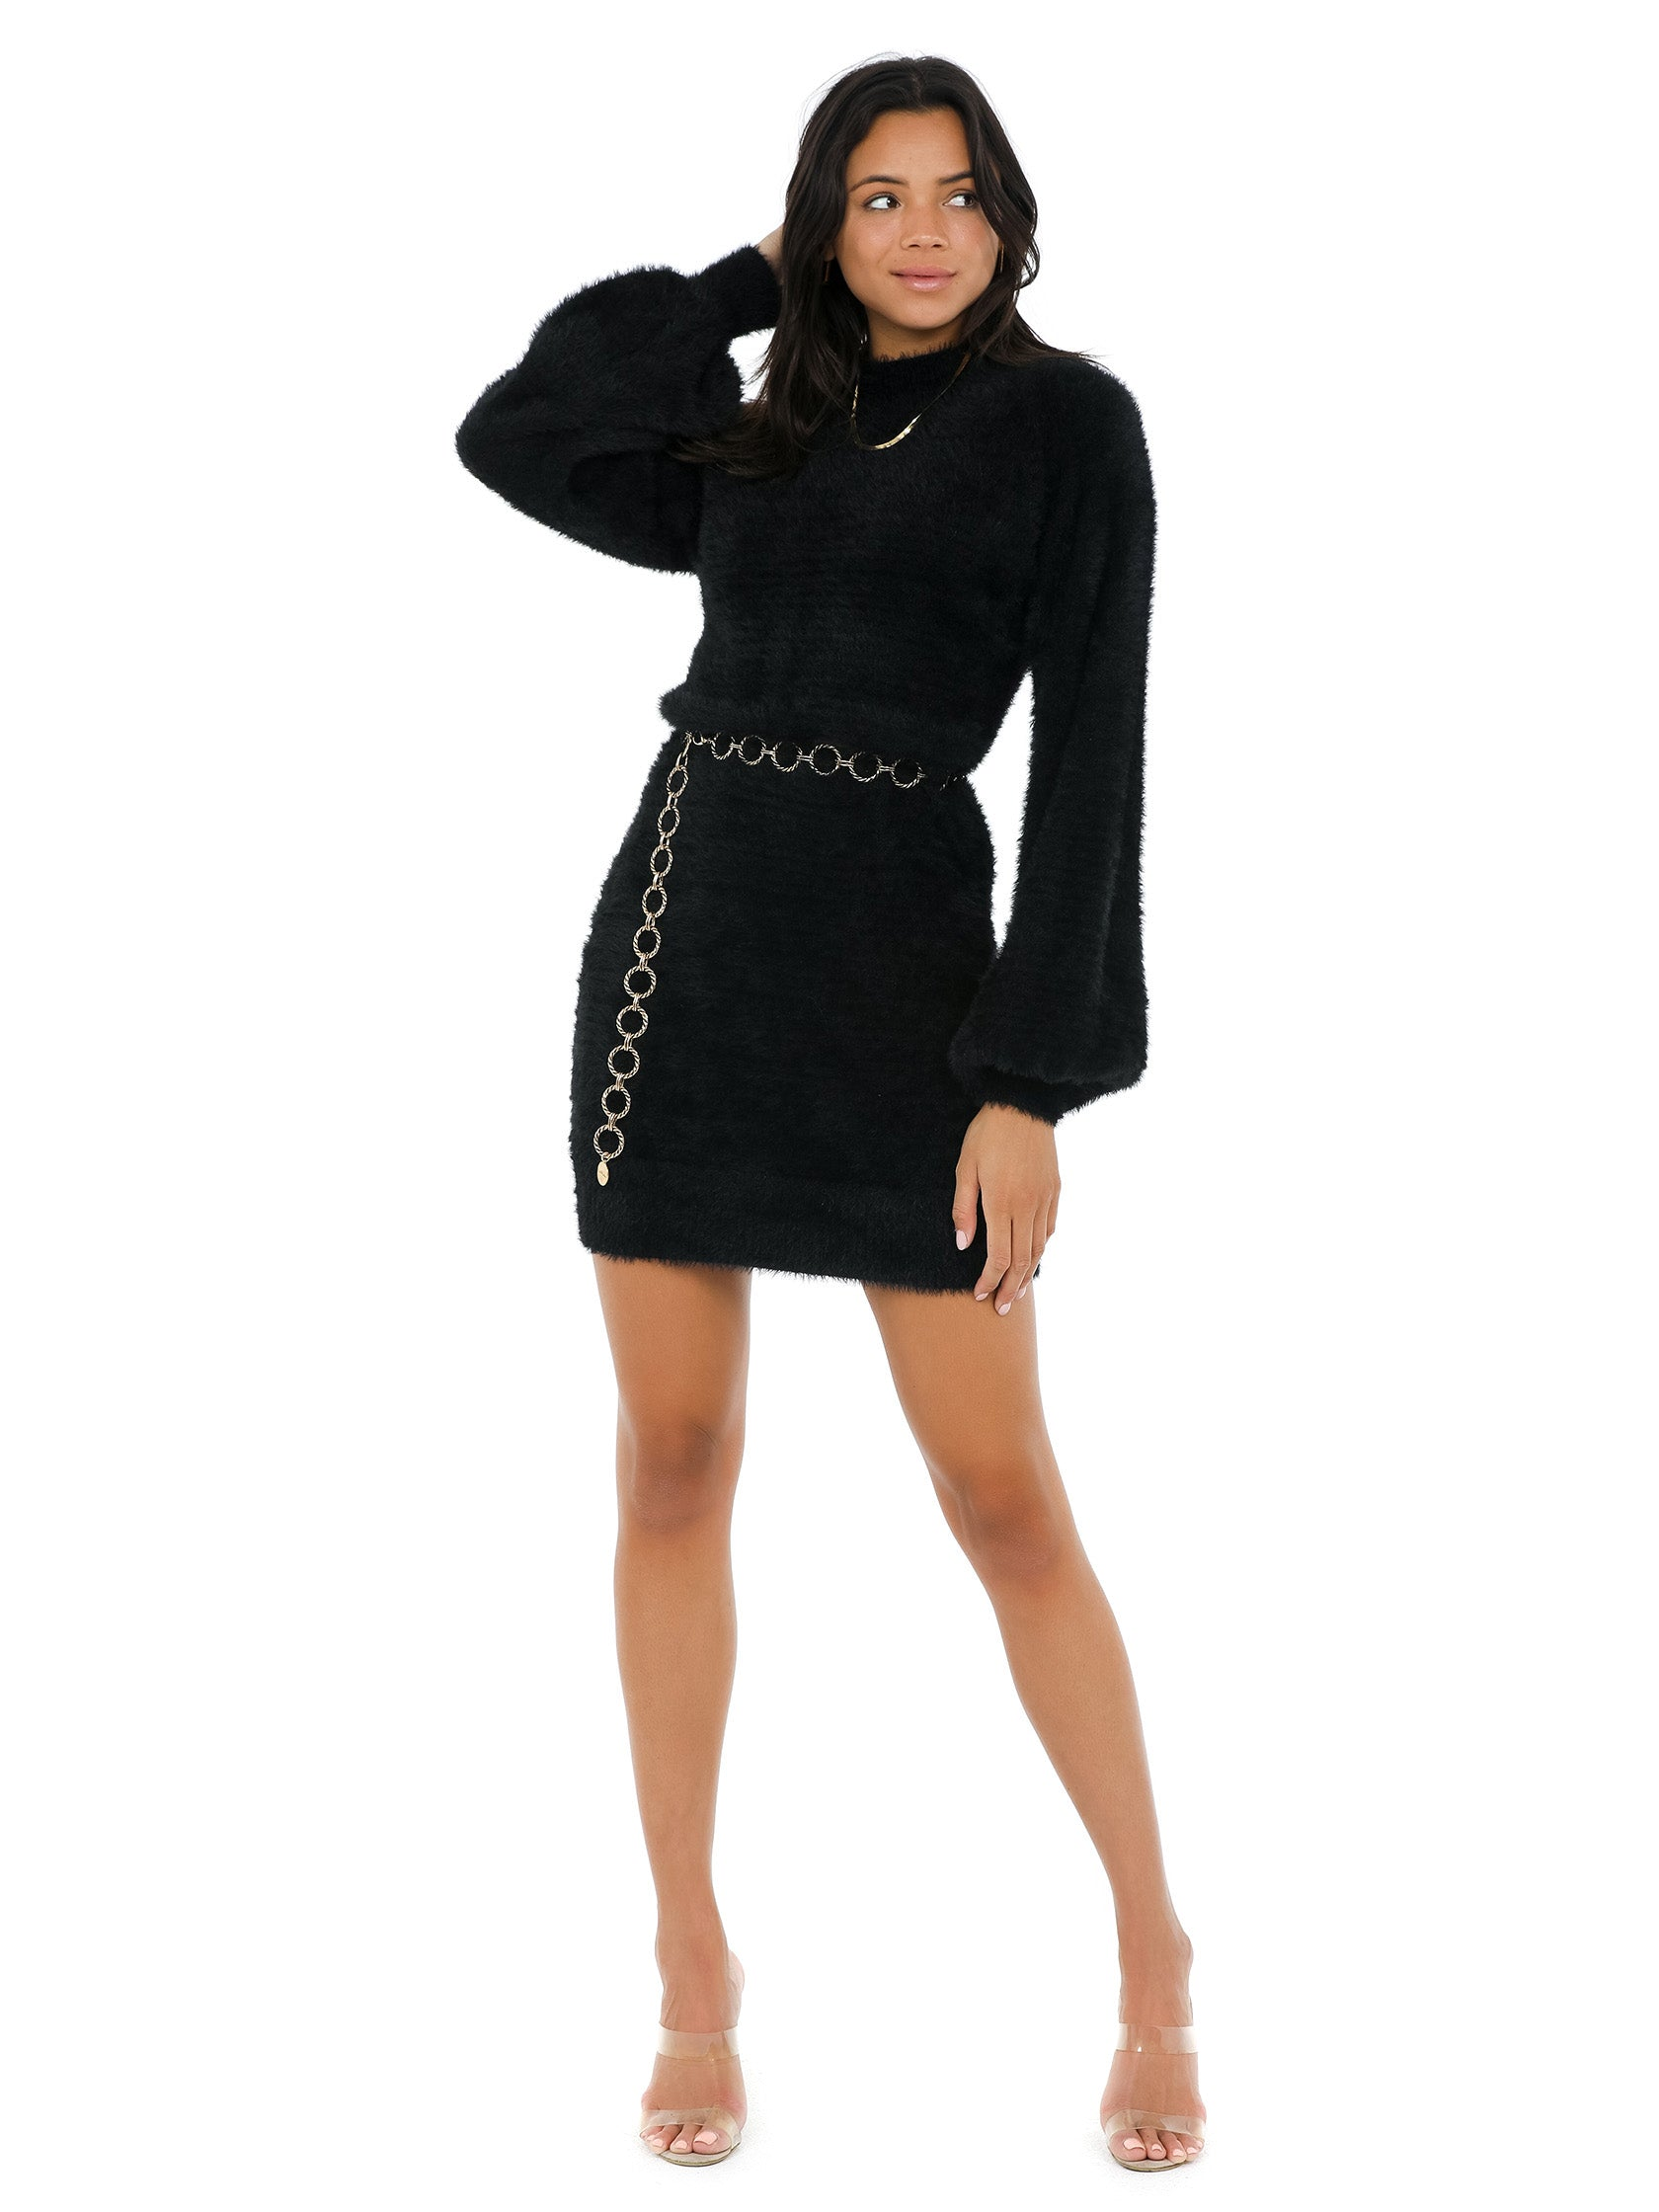 Girl outfit in a dress rental from BARDOT called Bell Sleeve Knit Dress